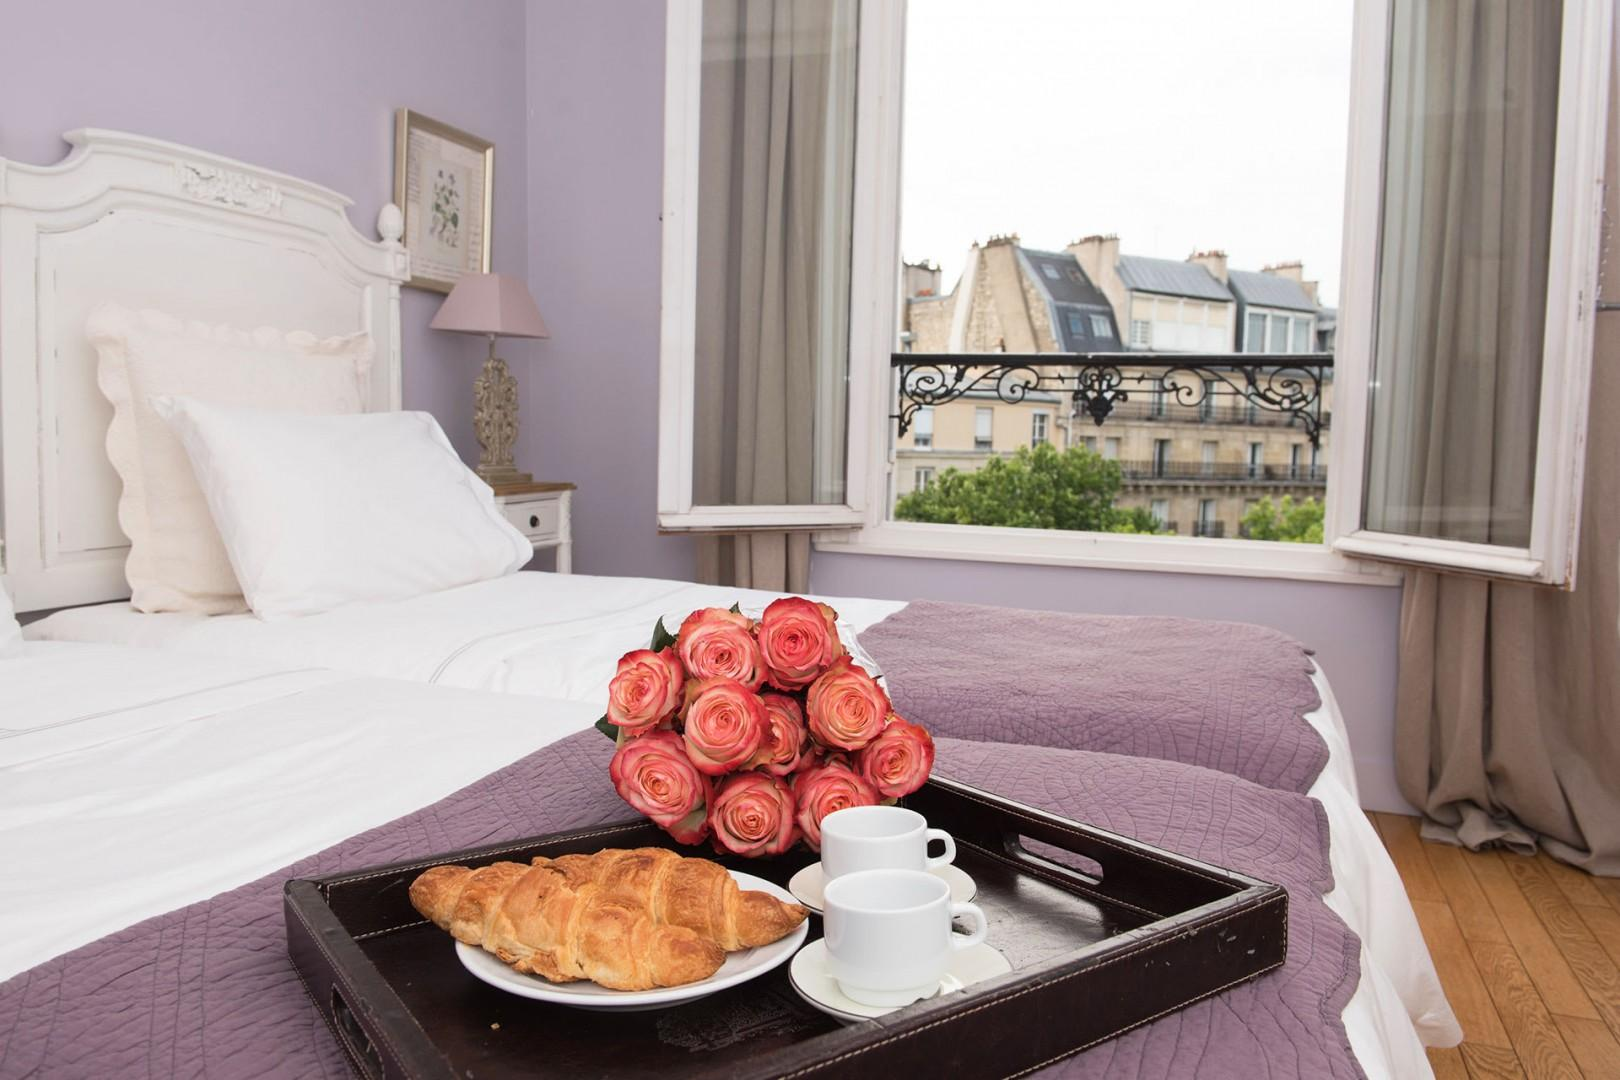 Sleep in and enjoy your breakfast in bed!